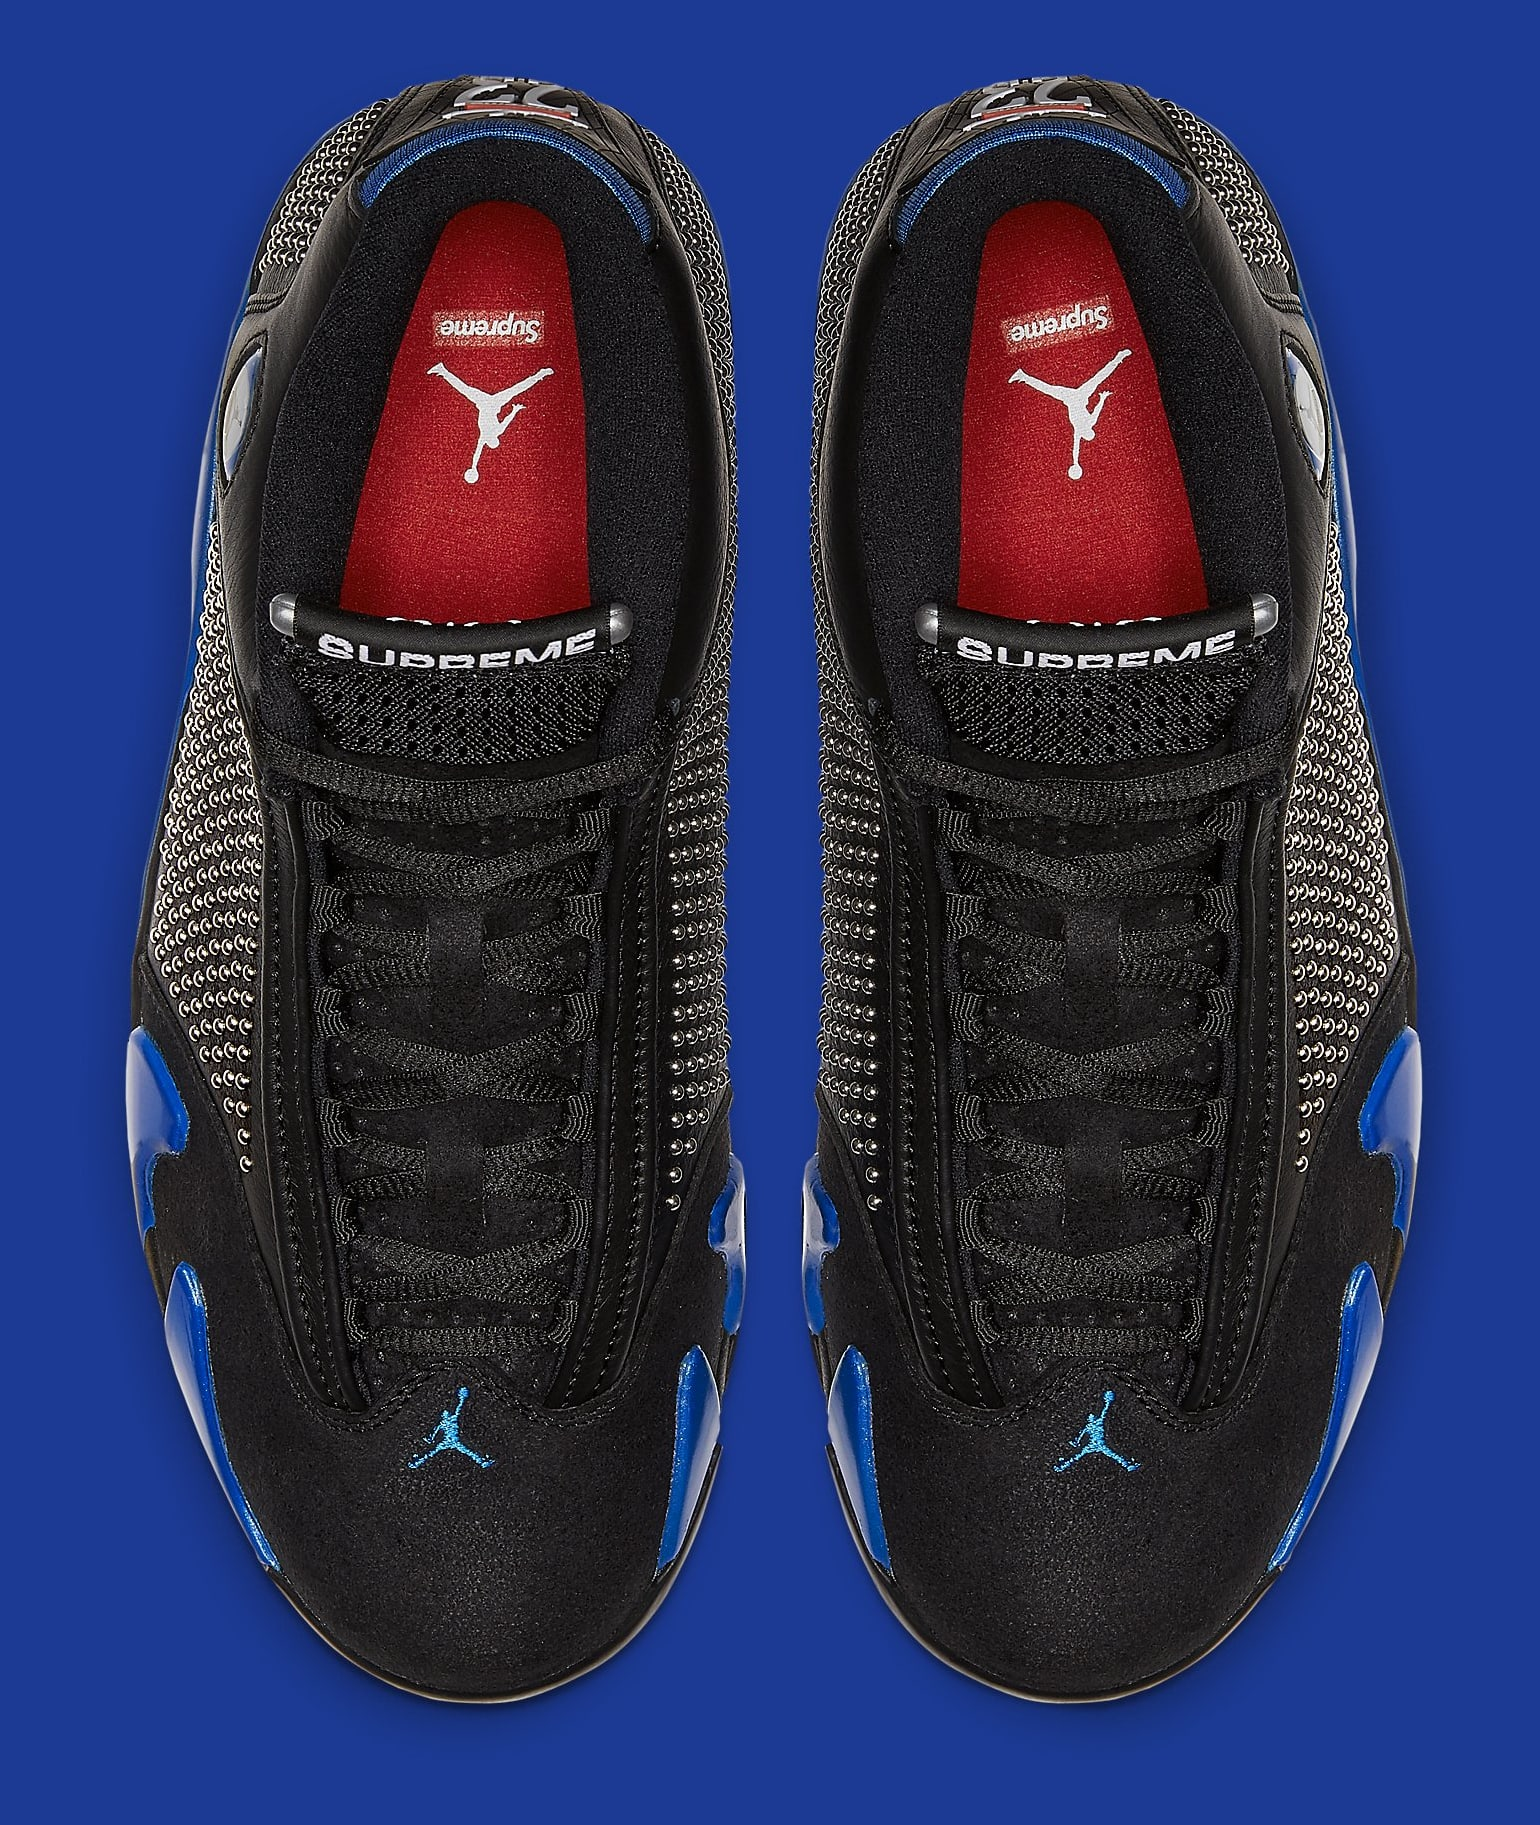 Supreme x Air Jordan 14 'Black/Game Royal' BV7630-004 Top